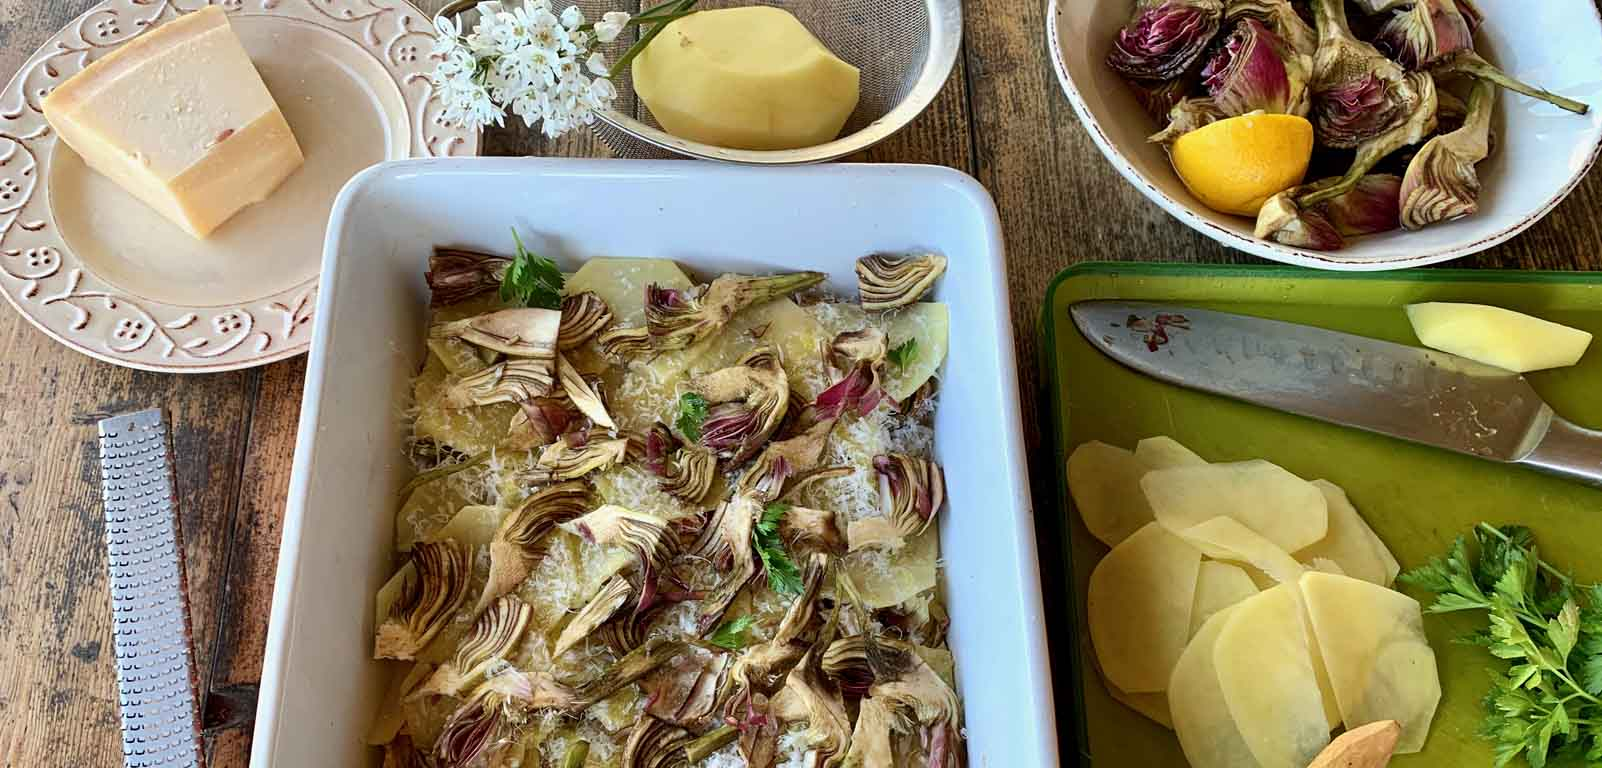 April 17: Artichoke & Potato Casserole Class